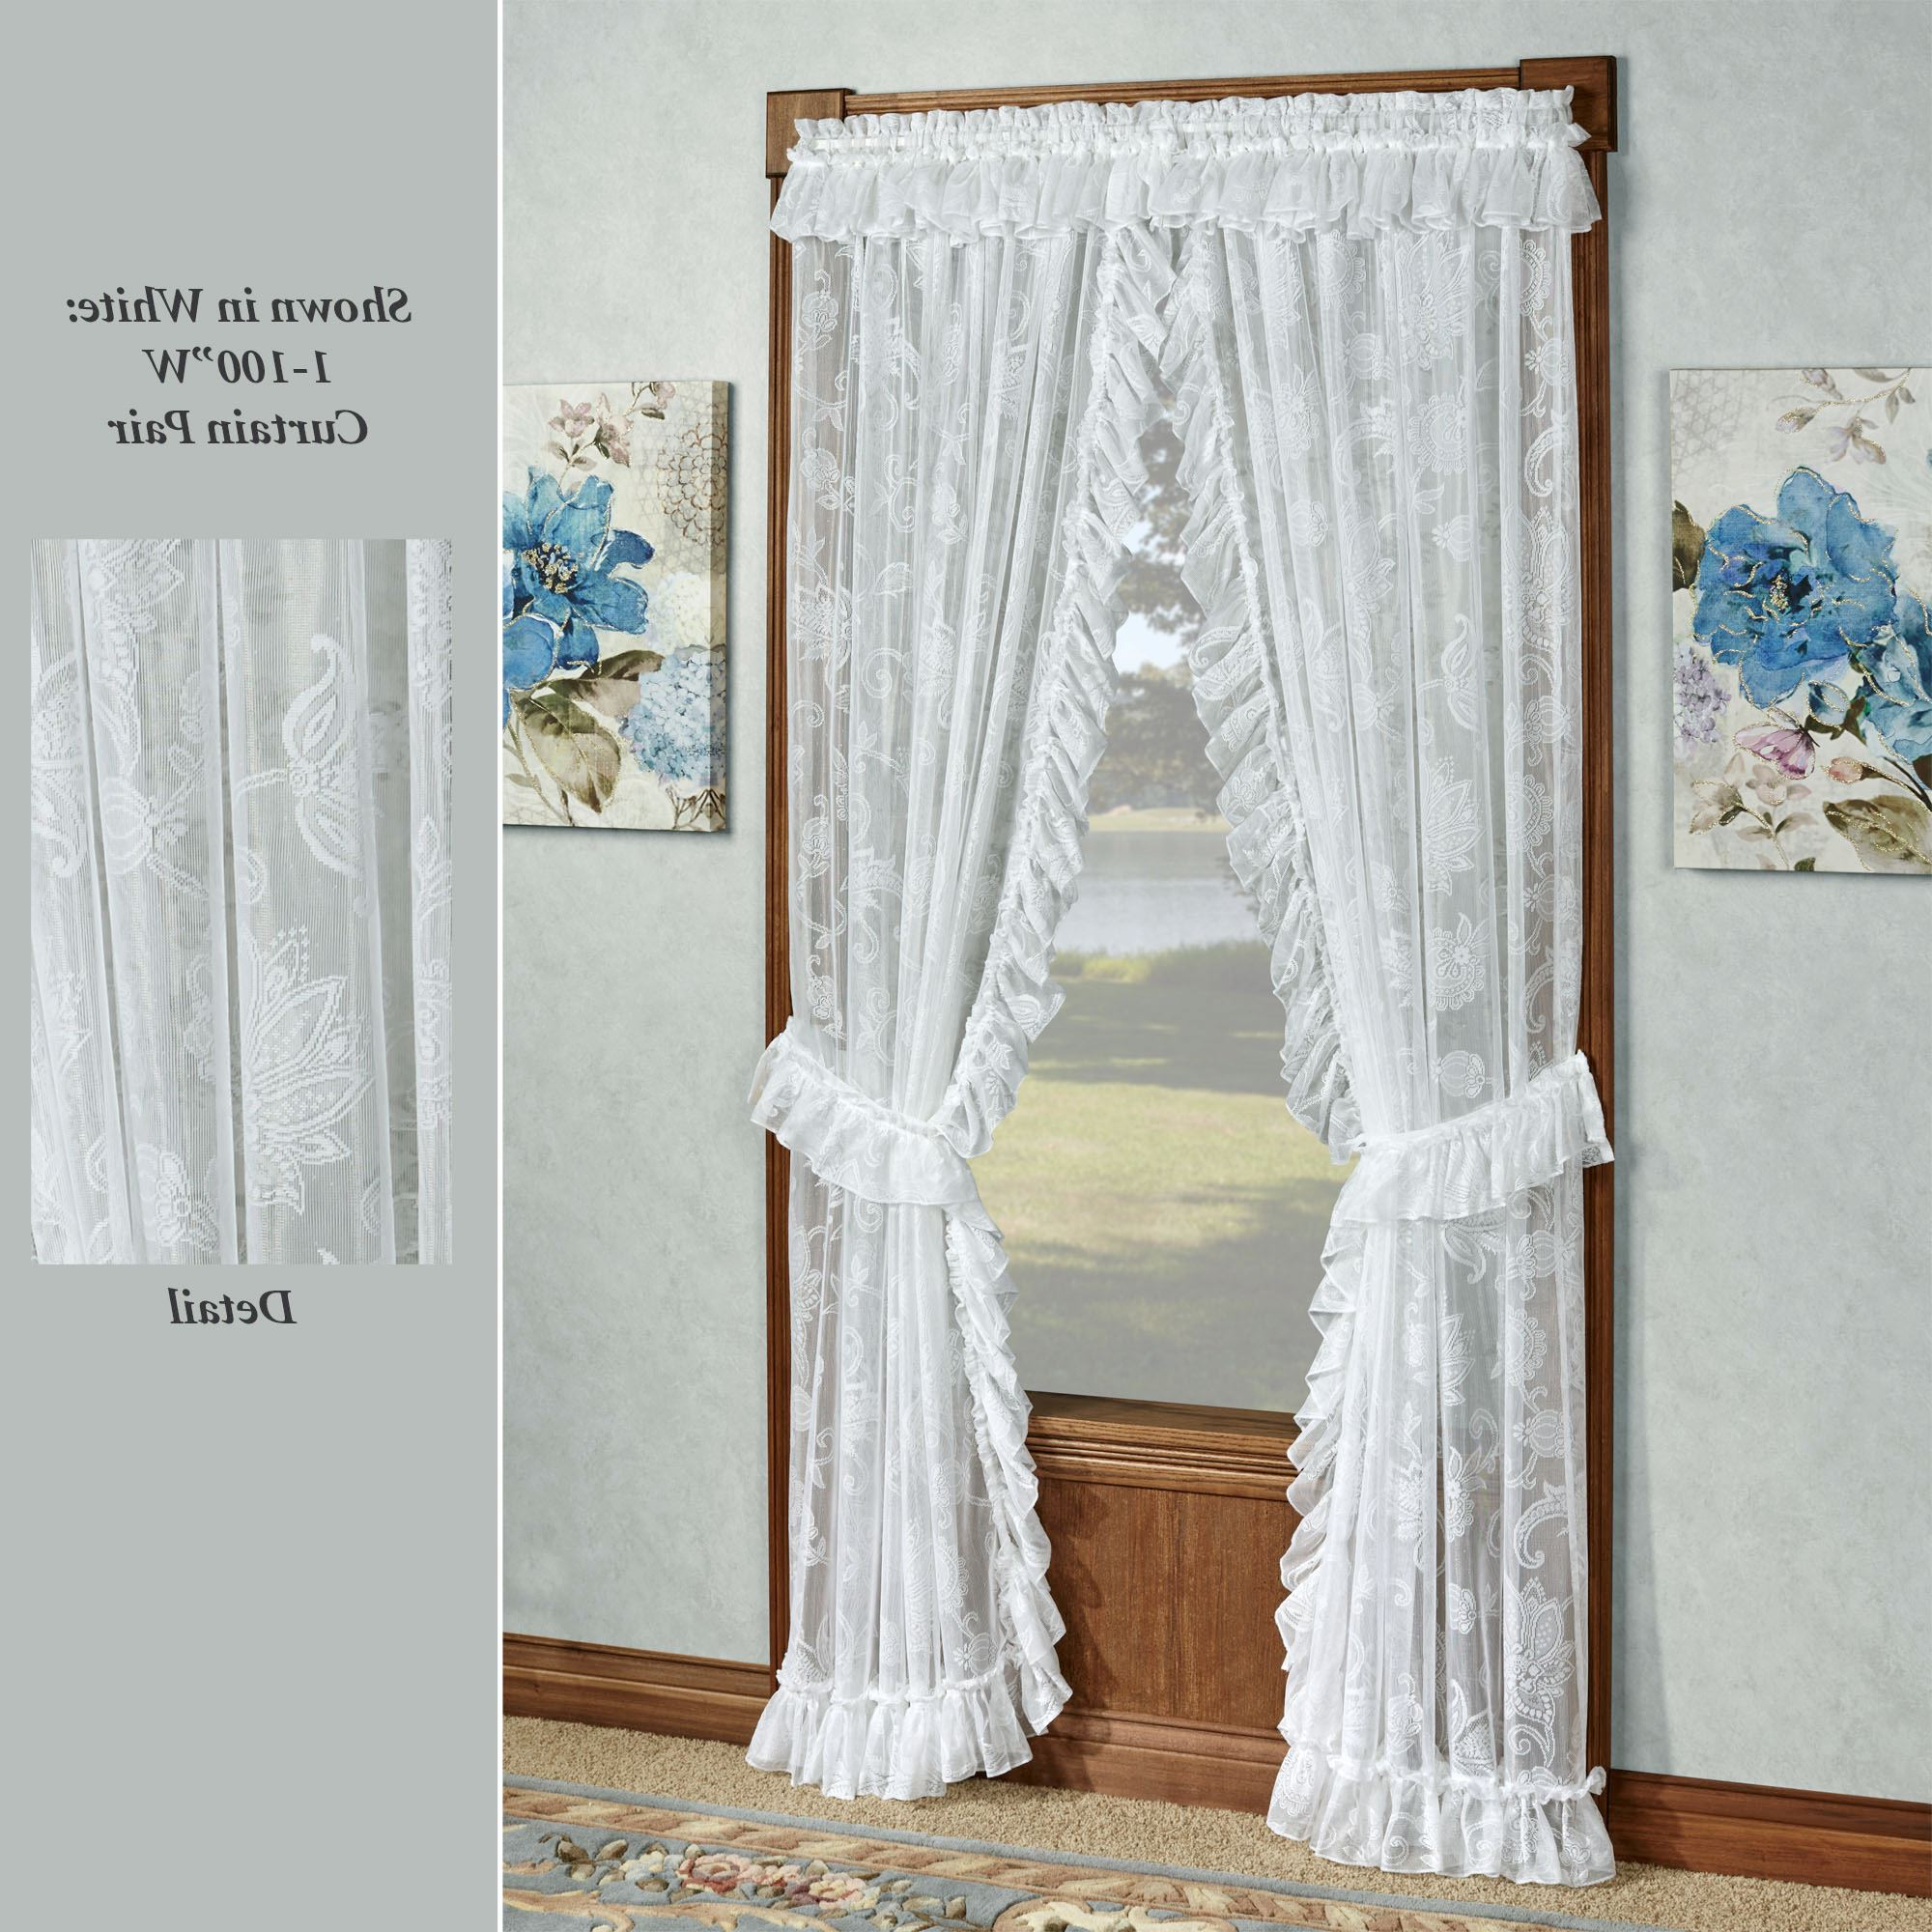 Preferred Elegant White Priscilla Lace Kitchen Curtain Pieces Intended For Maison Semi Sheer Lace Ruffled Priscilla Curtains (View 13 of 20)